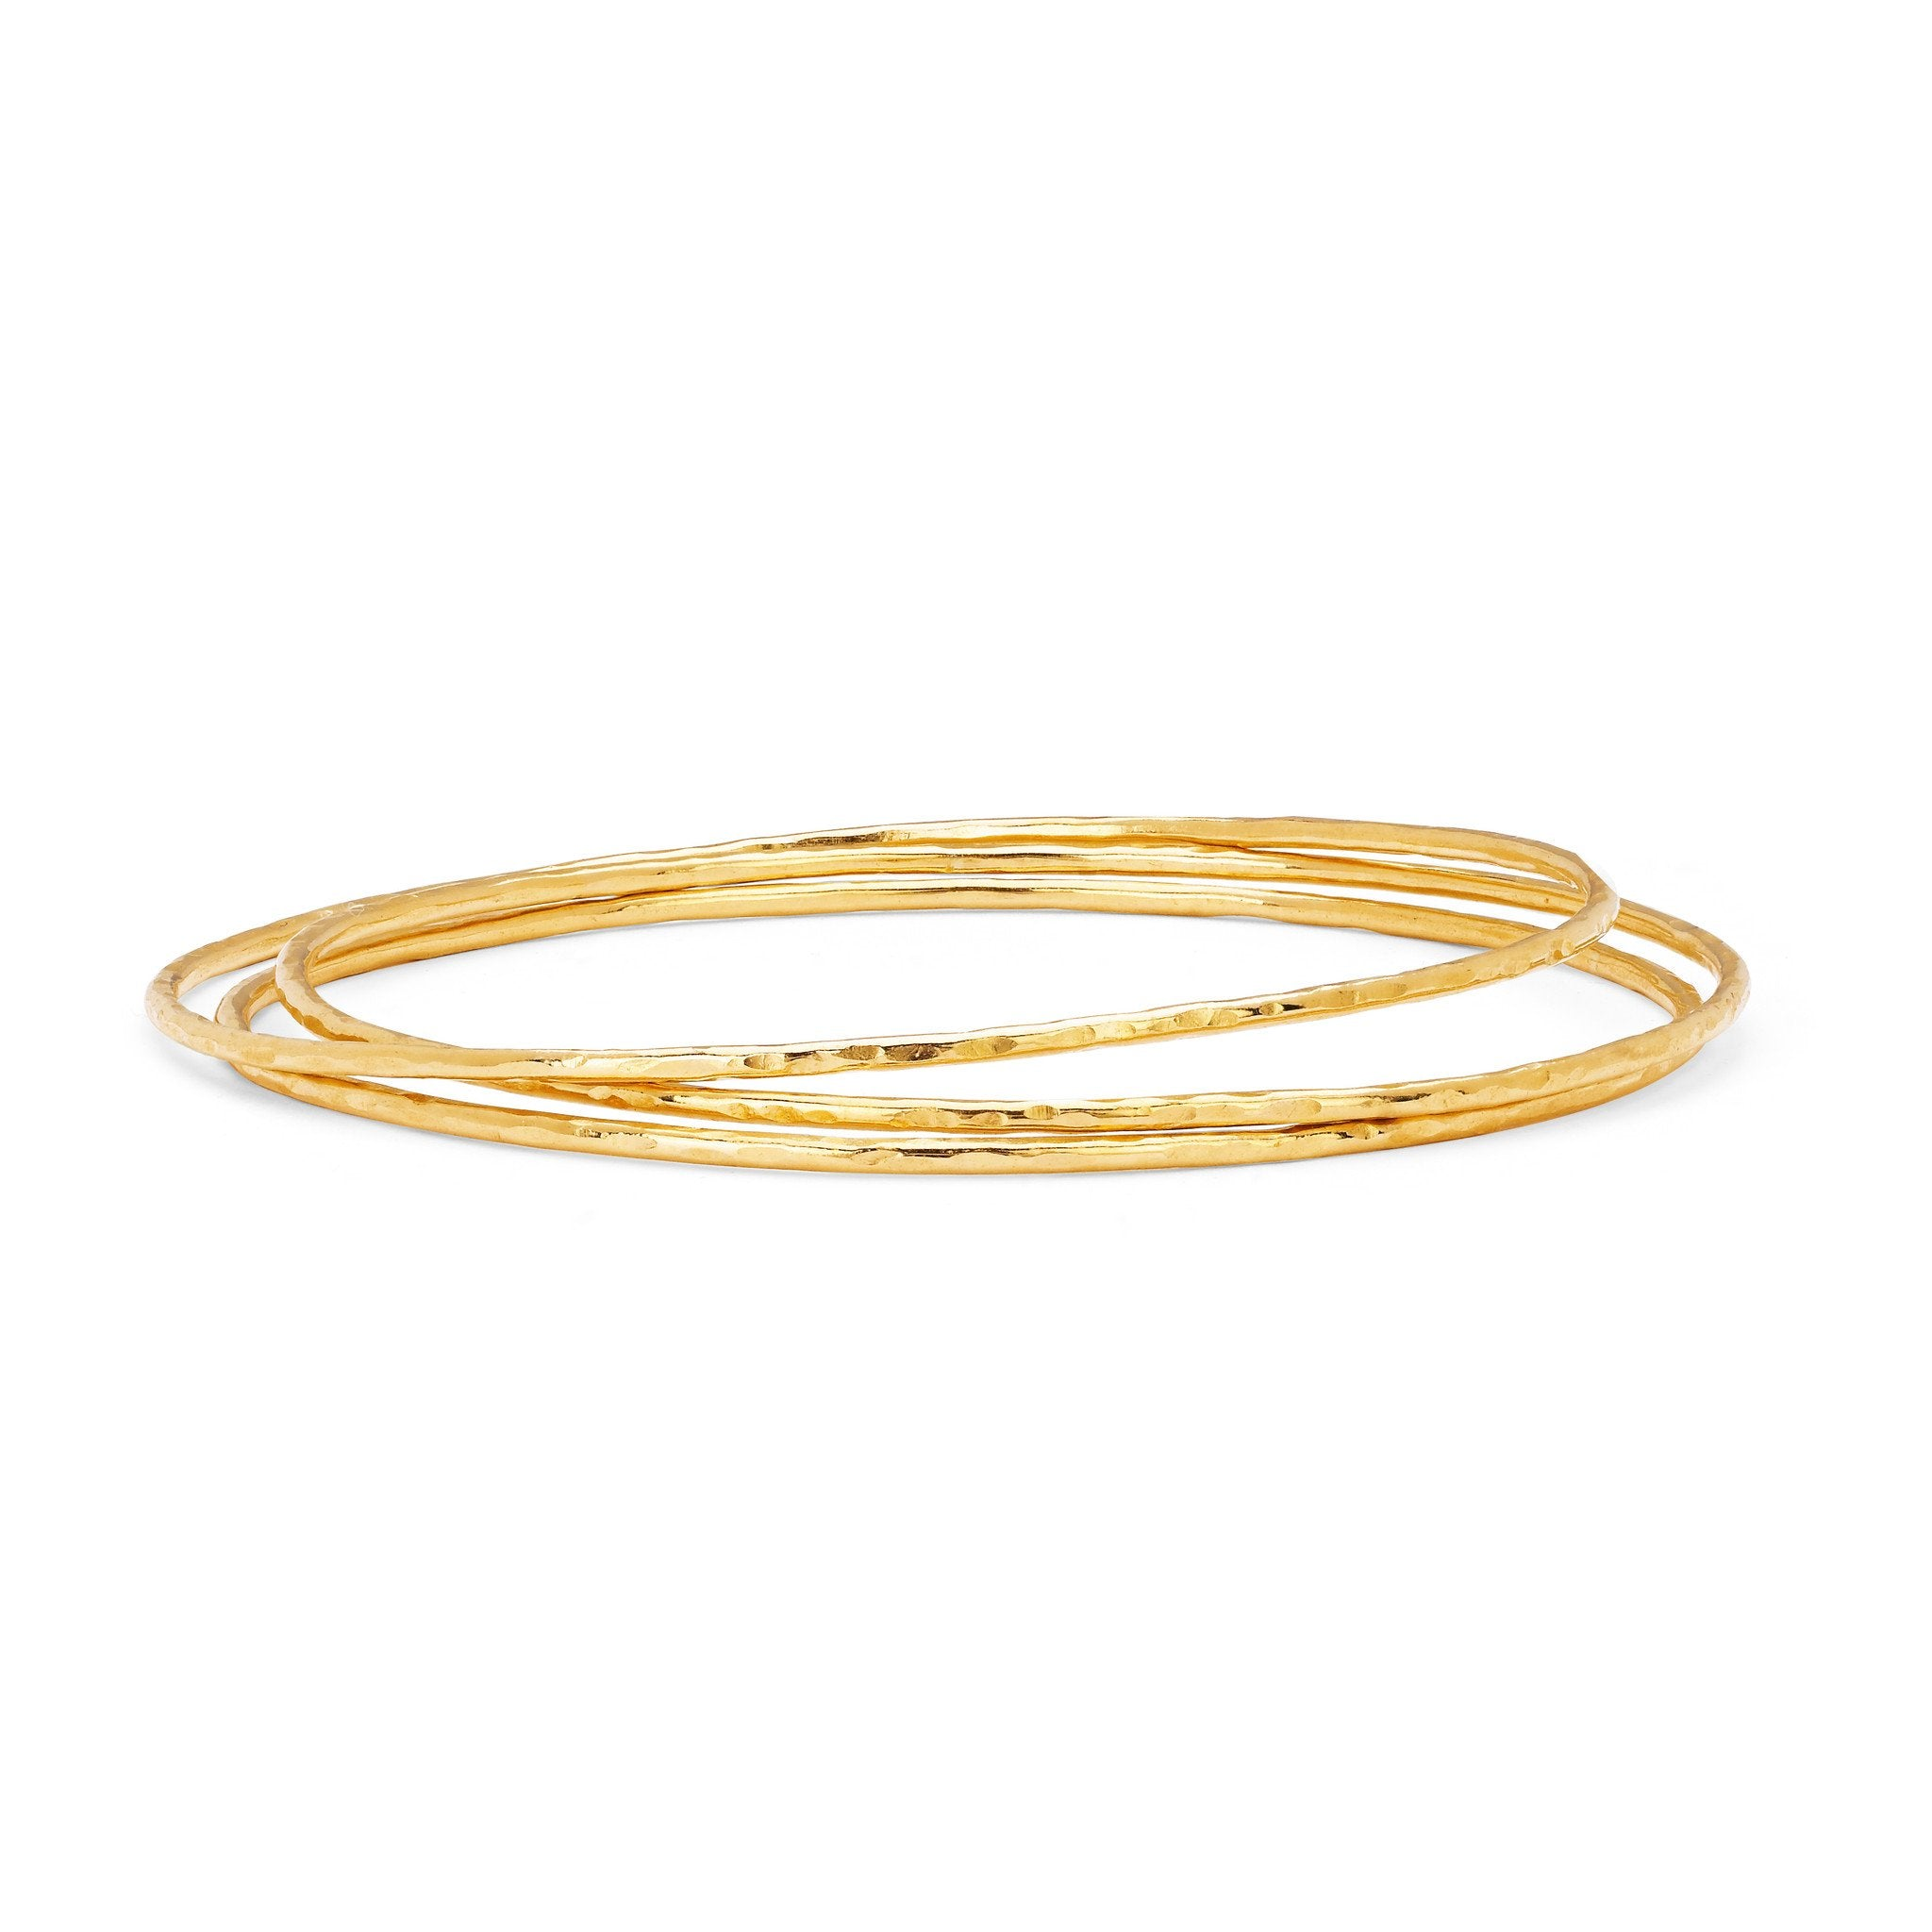 un bangle gold bangles bracelet clou cartier brac popular size nail product yellow juste